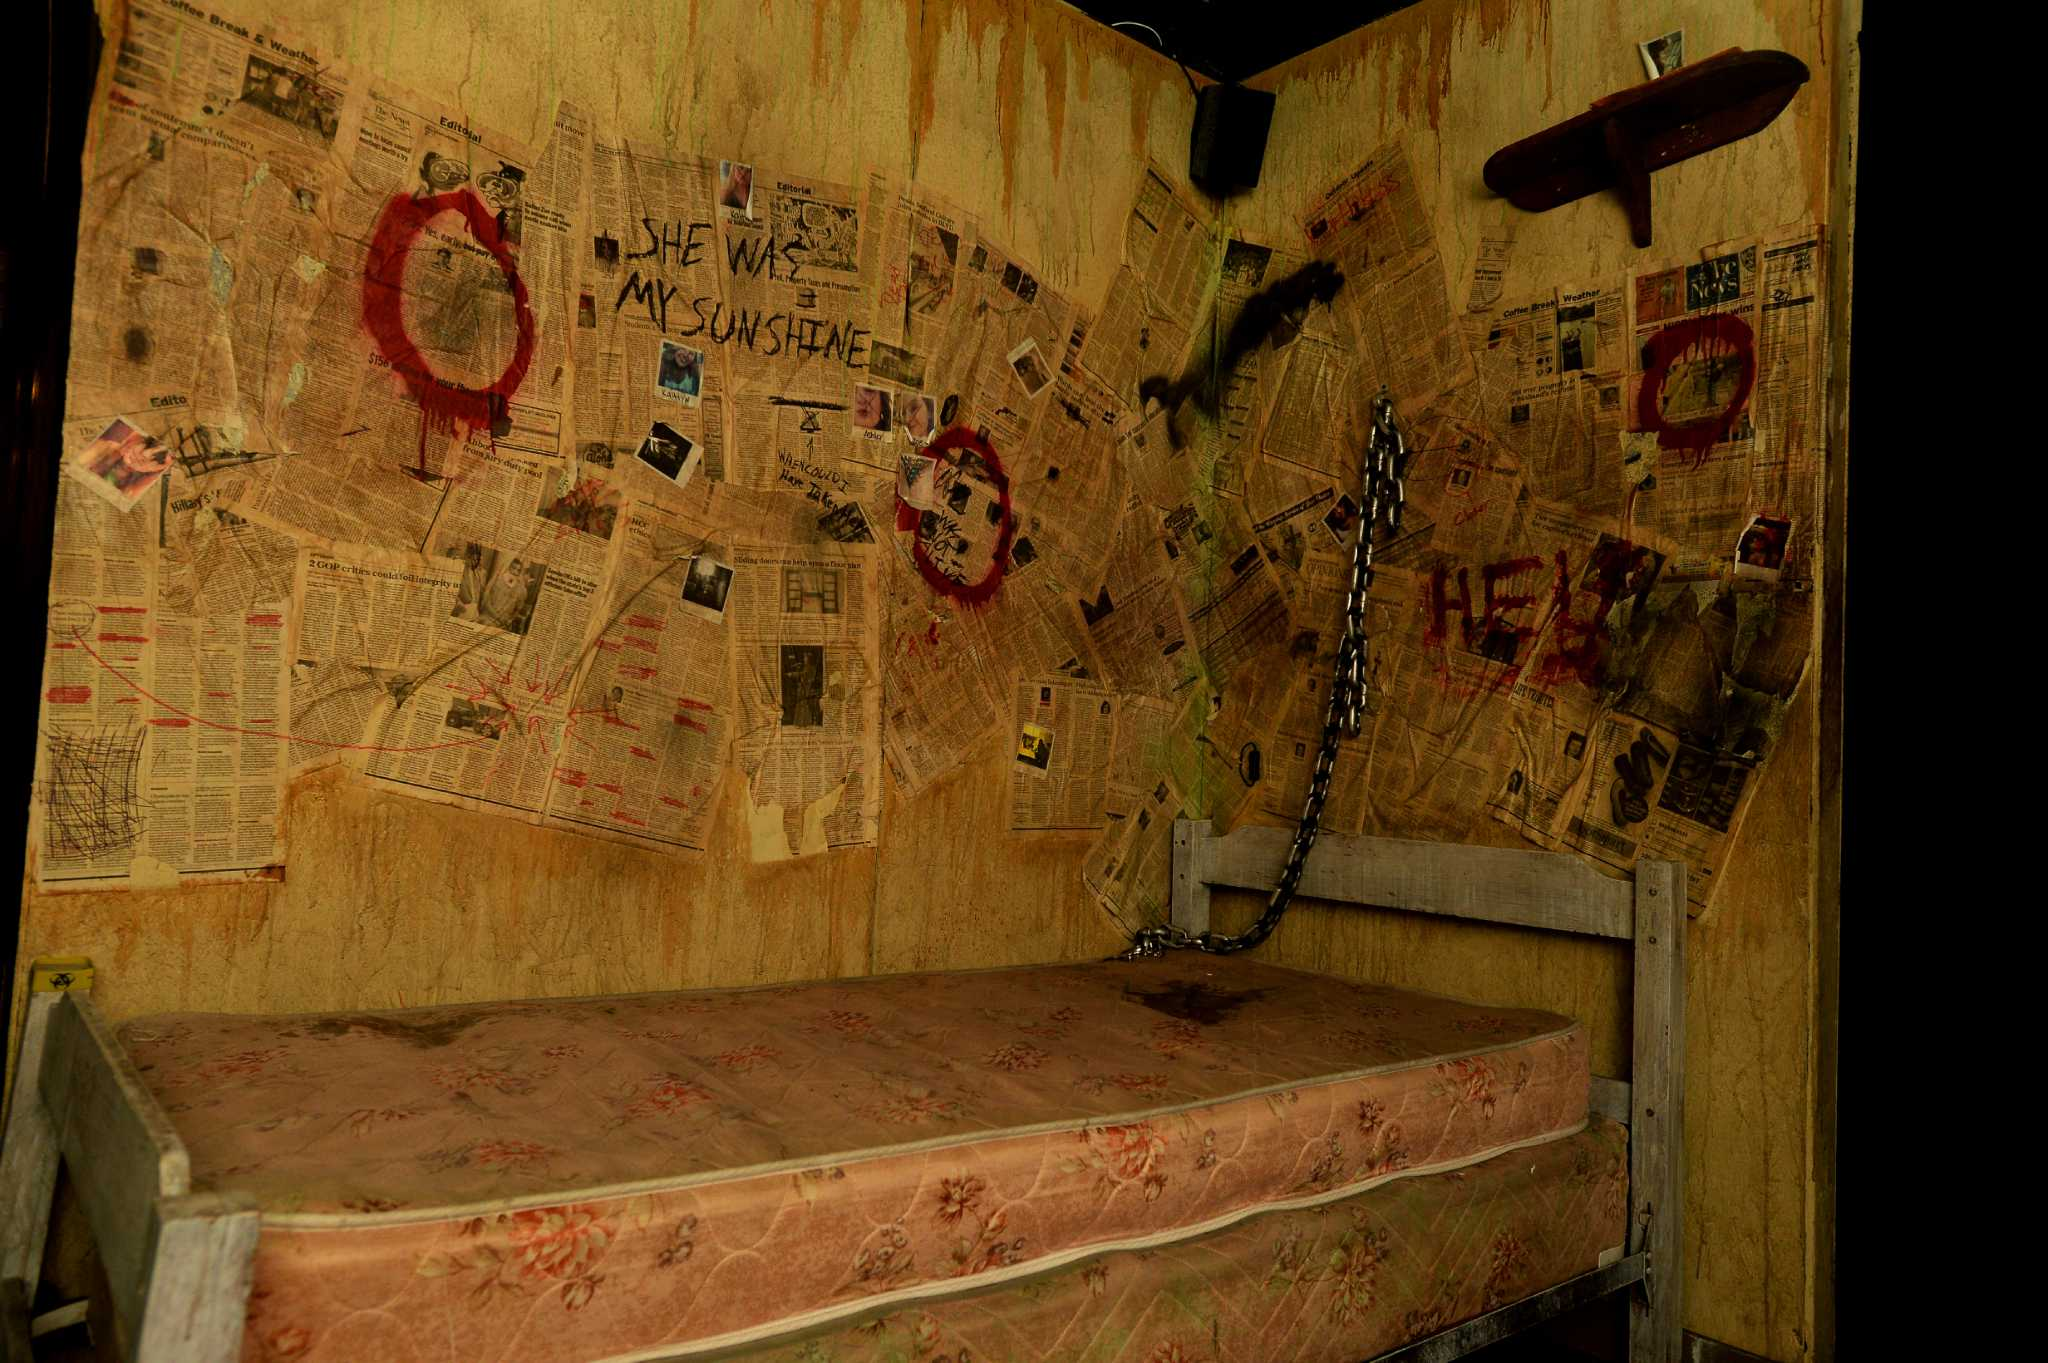 Escape room phenomenon expands to beaumont beaumont for Haunted room ideas